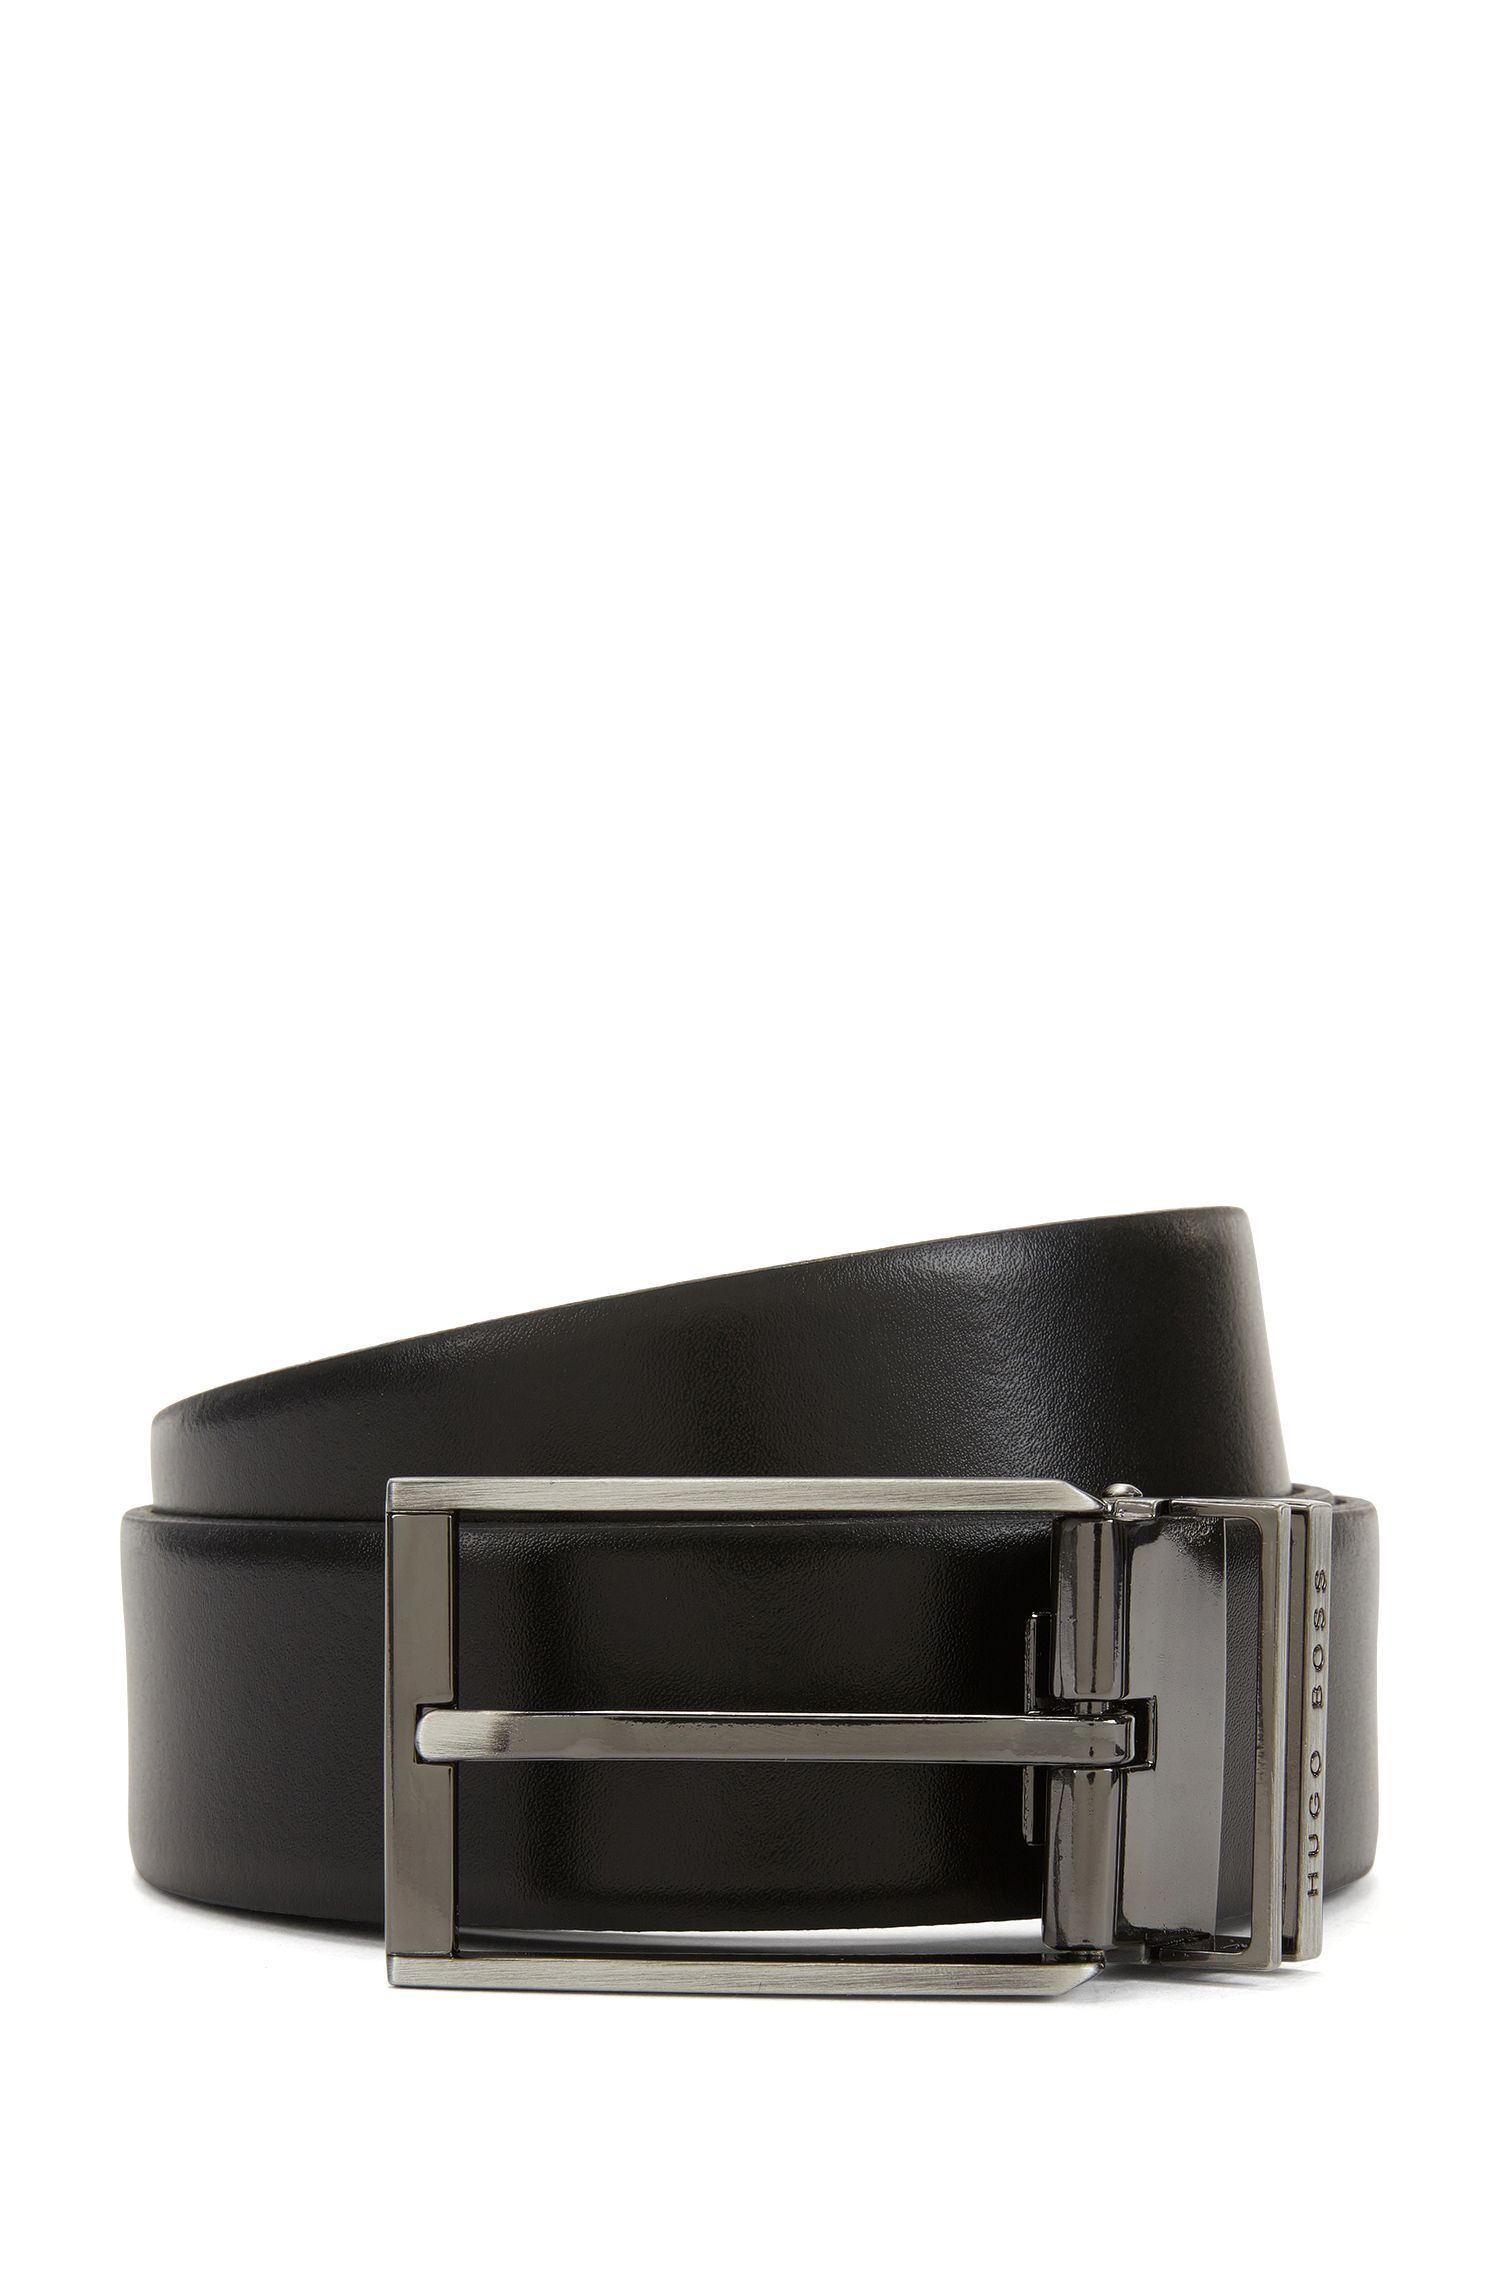 Reversible leather belt with two gunmetal hardware buckles